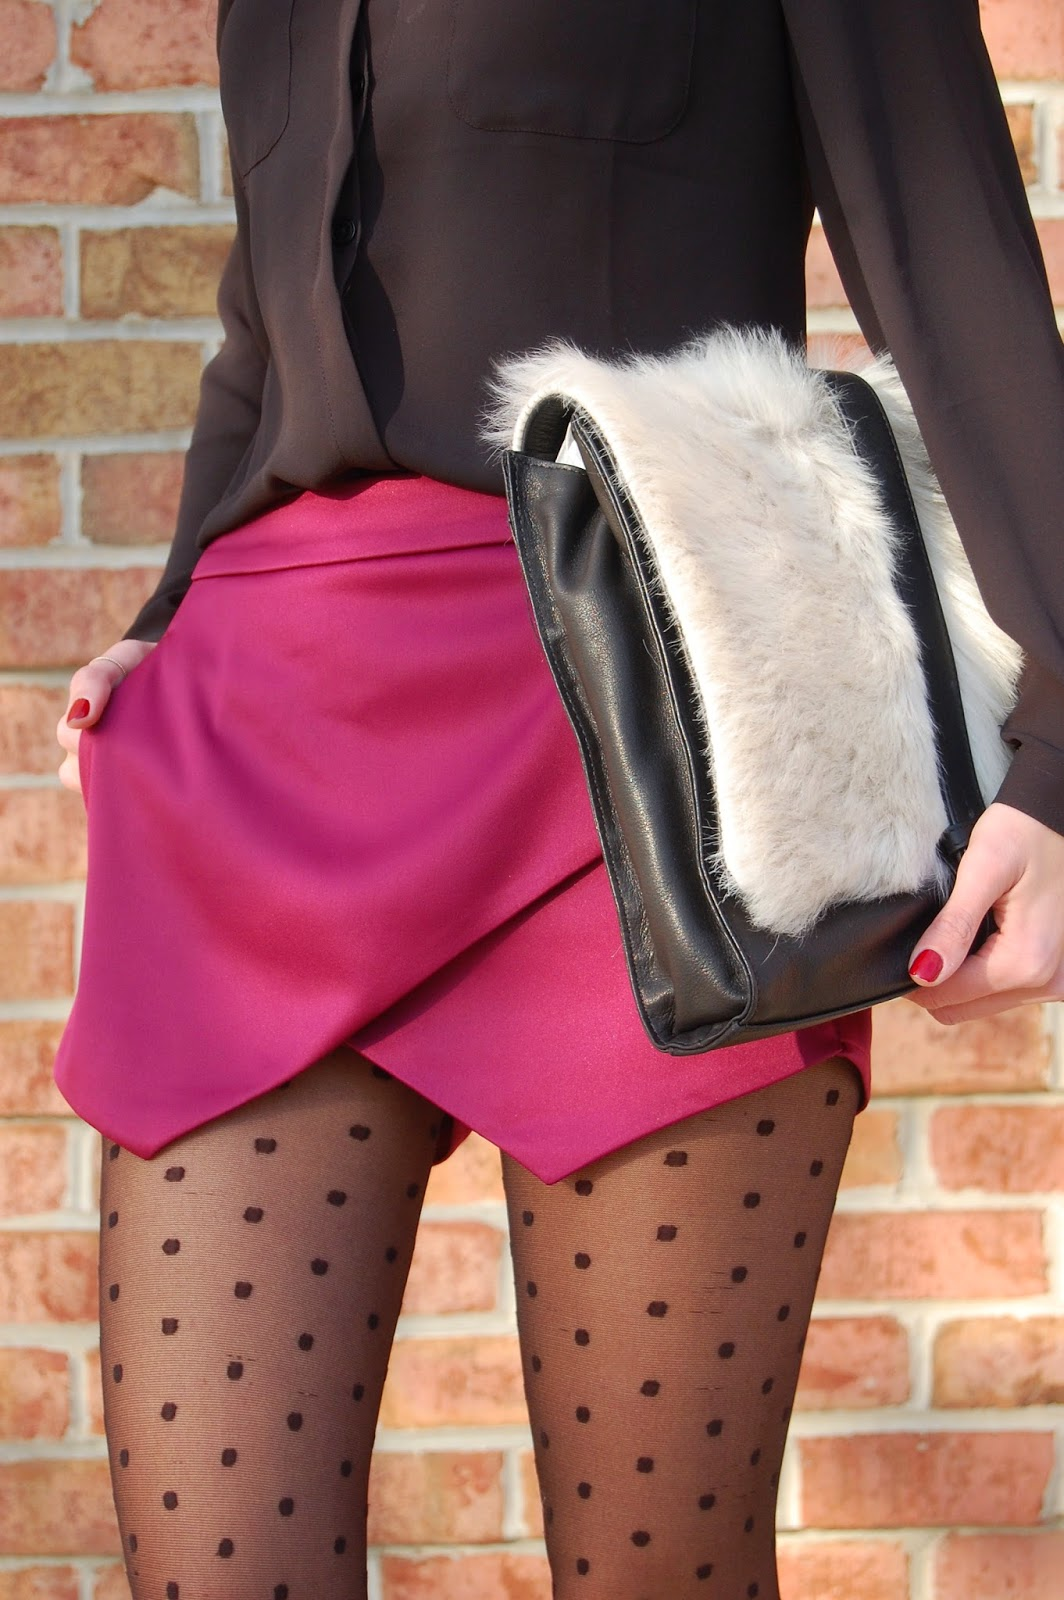 Wearing Express Satin Asymmetrical Hem Skirt, Little Liffner Furry Clutch, Zara Suede Platform Booties, Holiday Glam Party Look